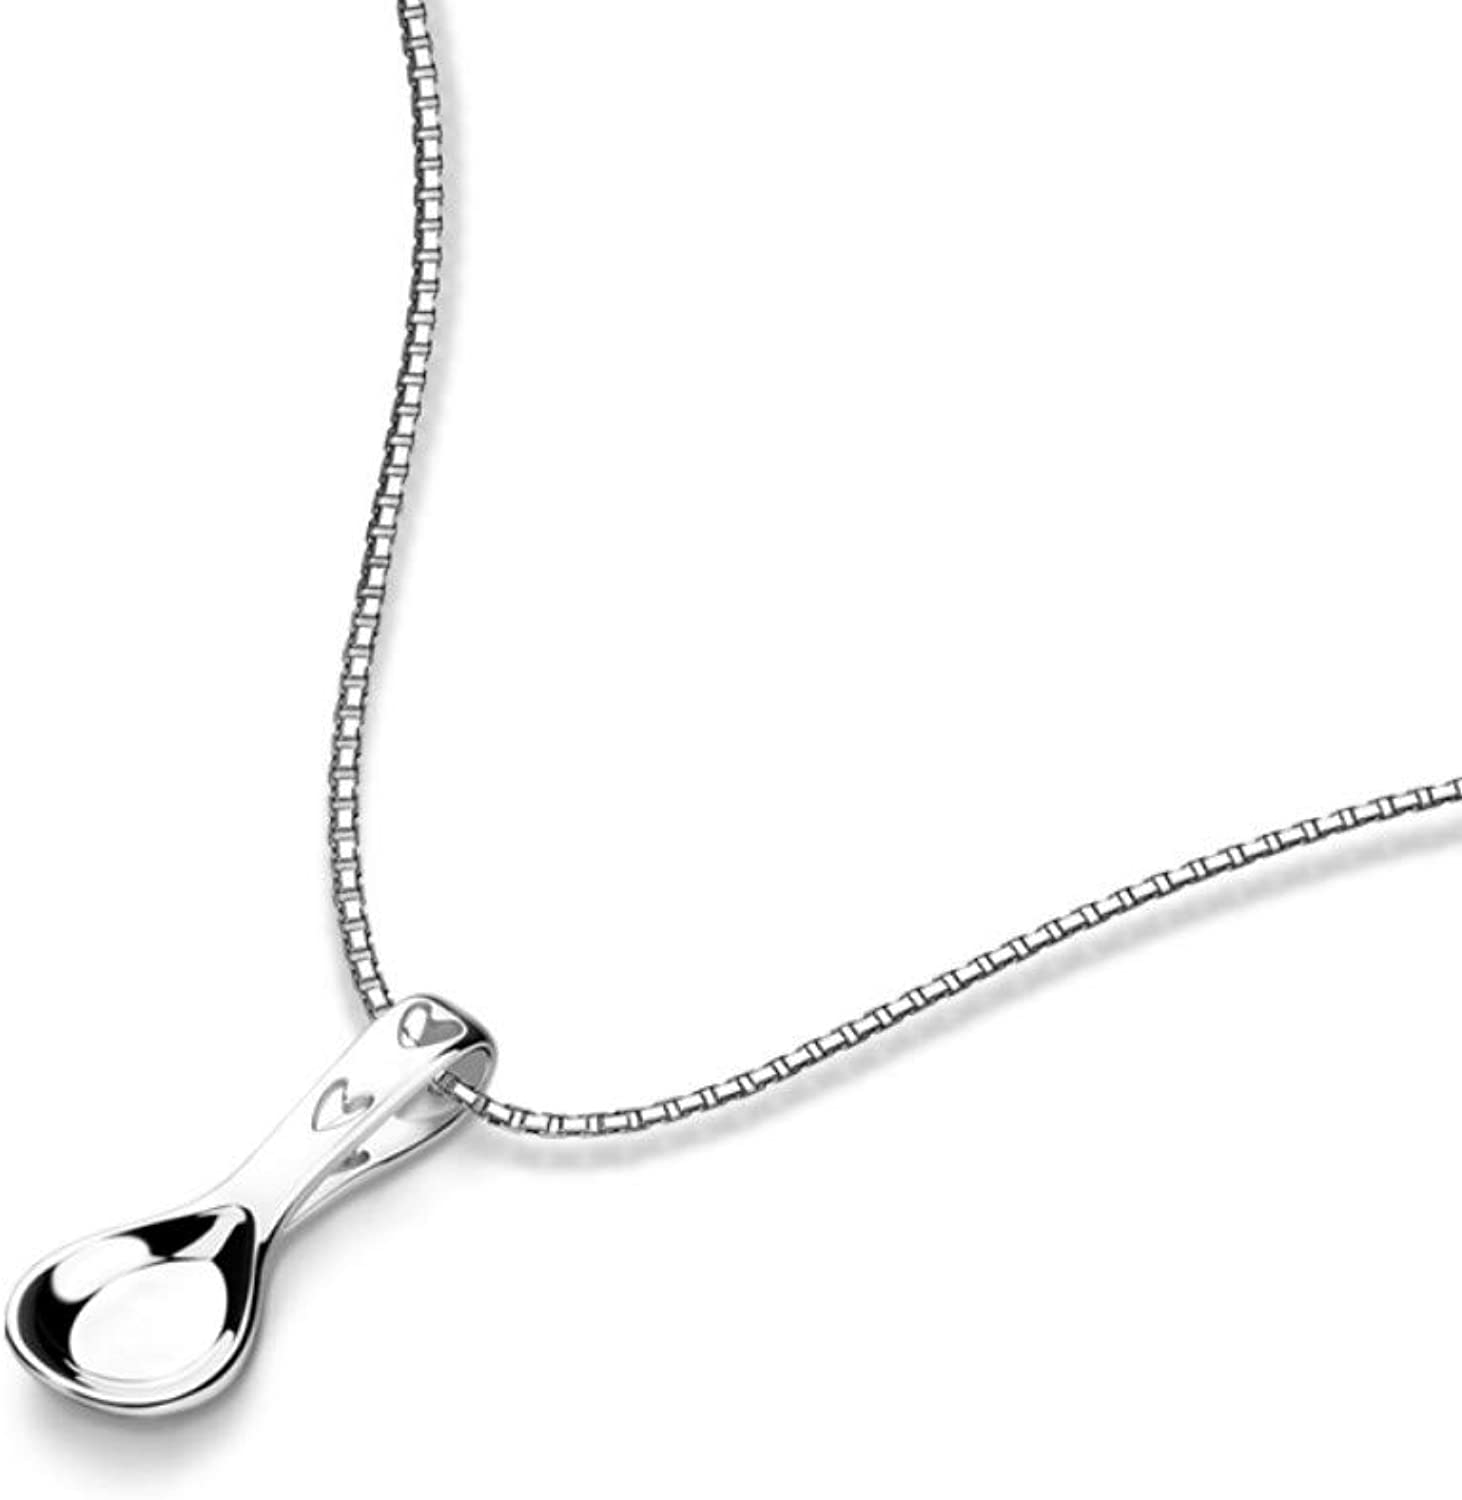 QMM necklace Pendant 100% S925 Sterling Silver Spoon Pendant Necklace Simple Women & Girls Short Silver Chains Jewelry